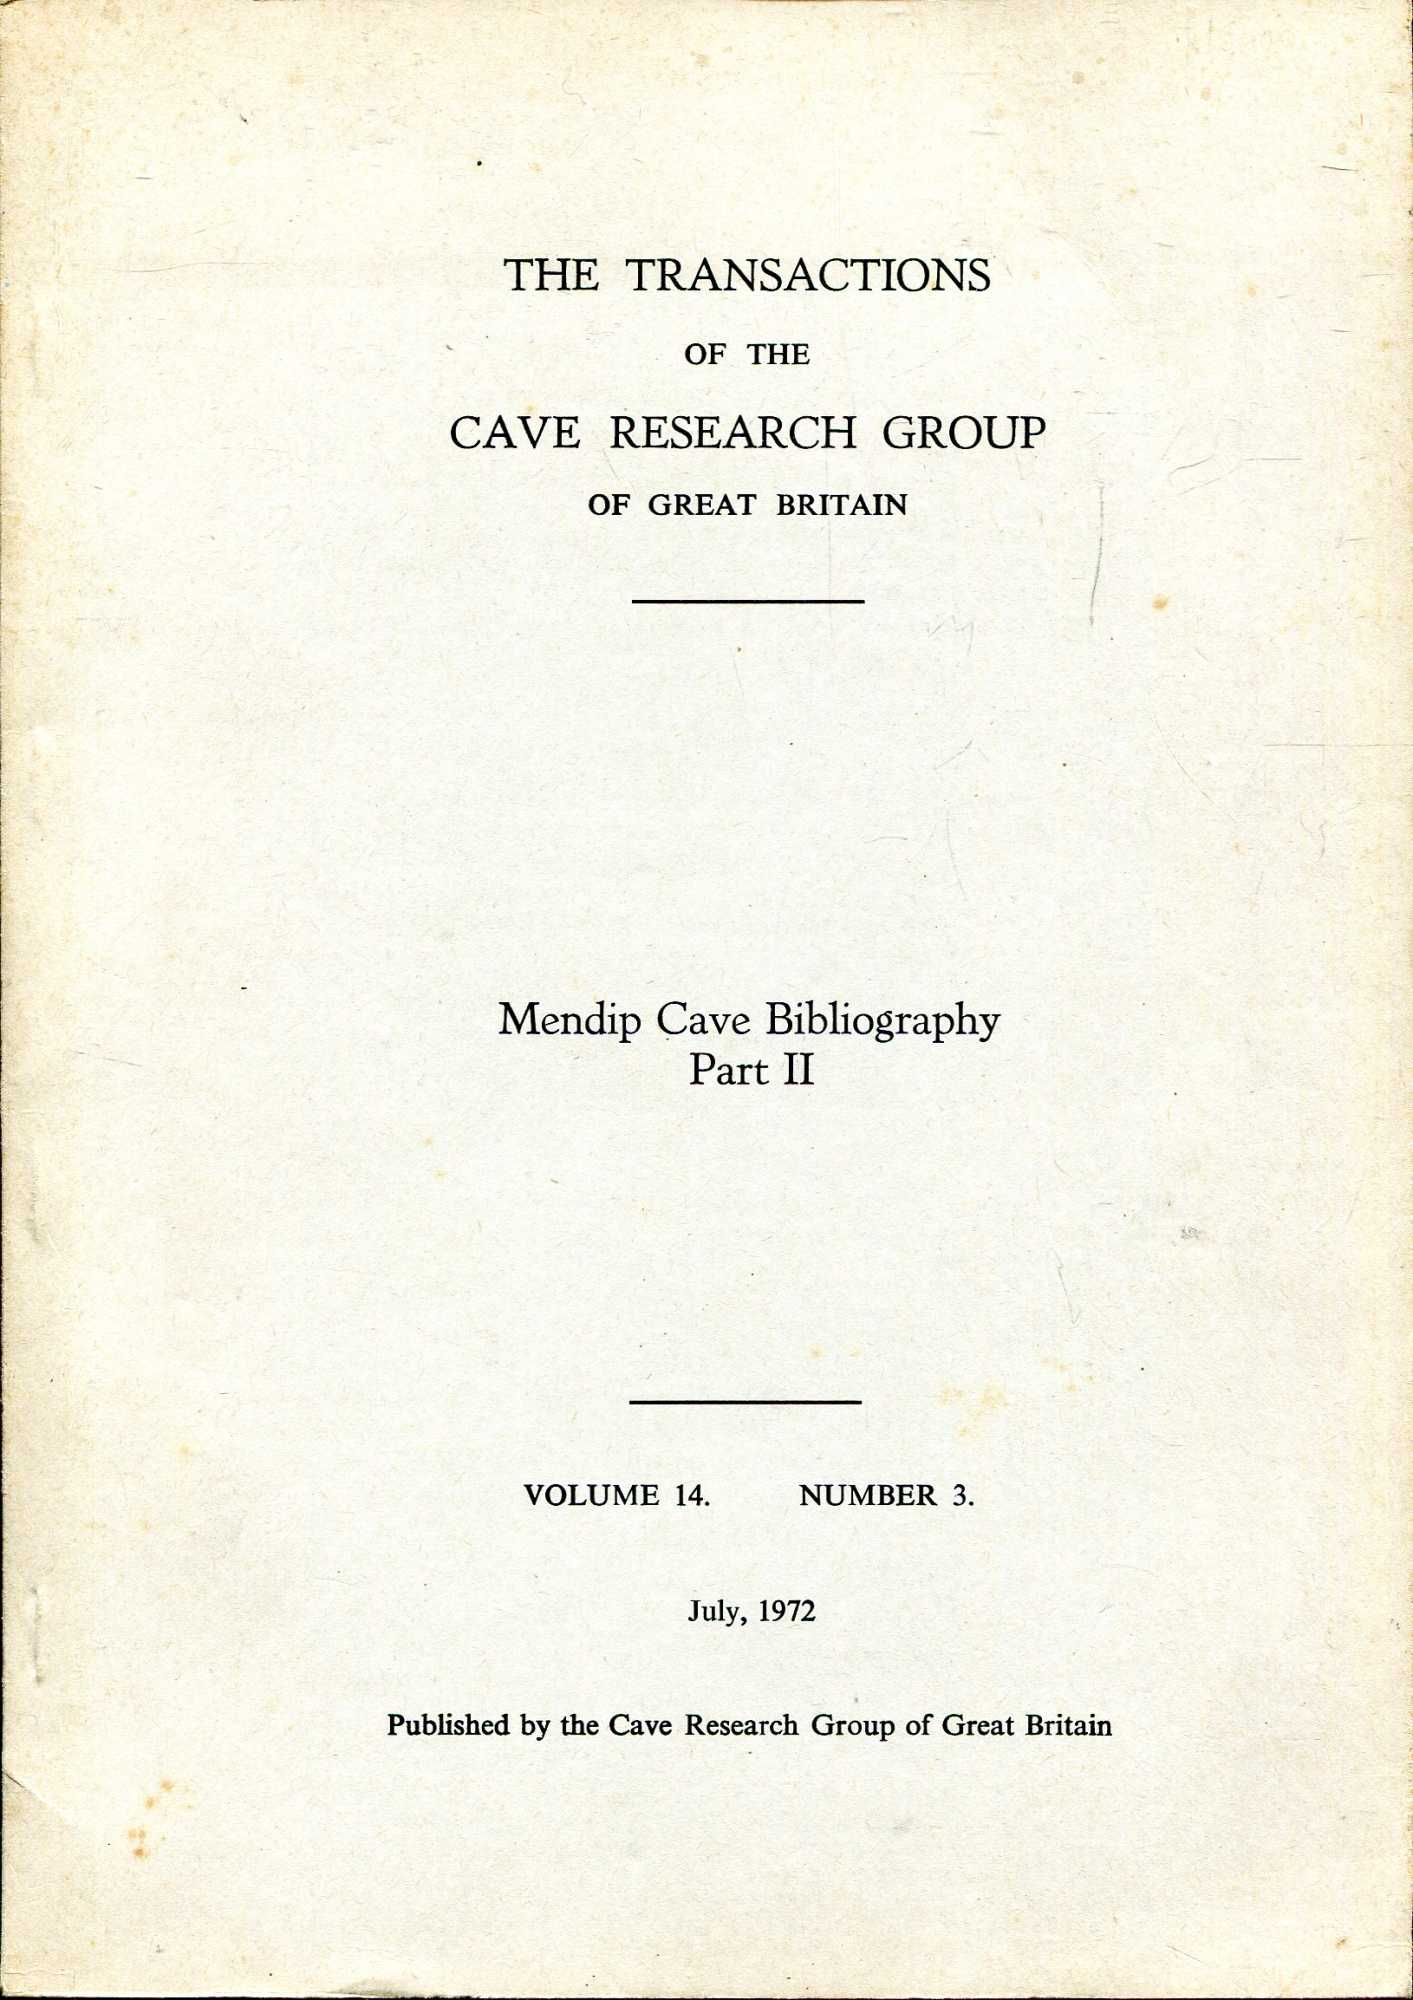 Image for Transactions of the Cave Research Group, volume 14, Number 3 : Mendip Cave Bibliography, part II: Books, Pamphlets, manuscripts and Maps